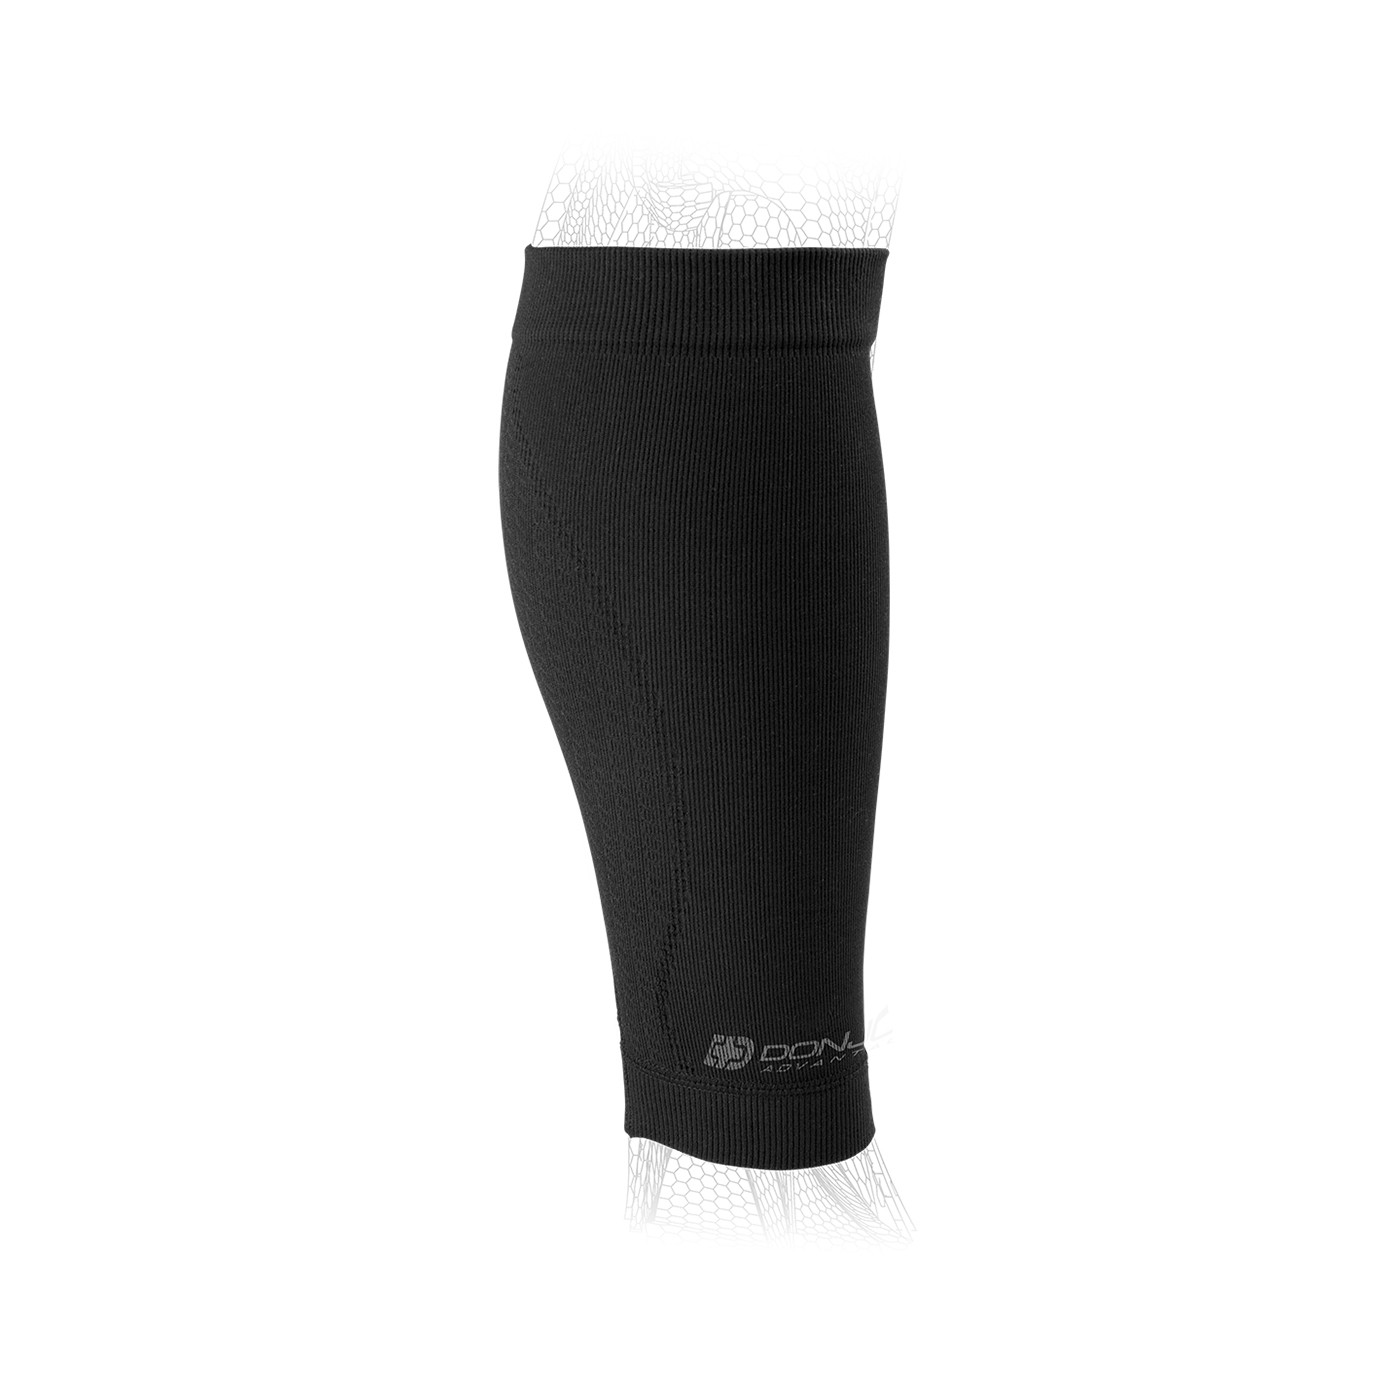 DonJoy® Advantage Performance Compression Calf Sleeves (Pair)